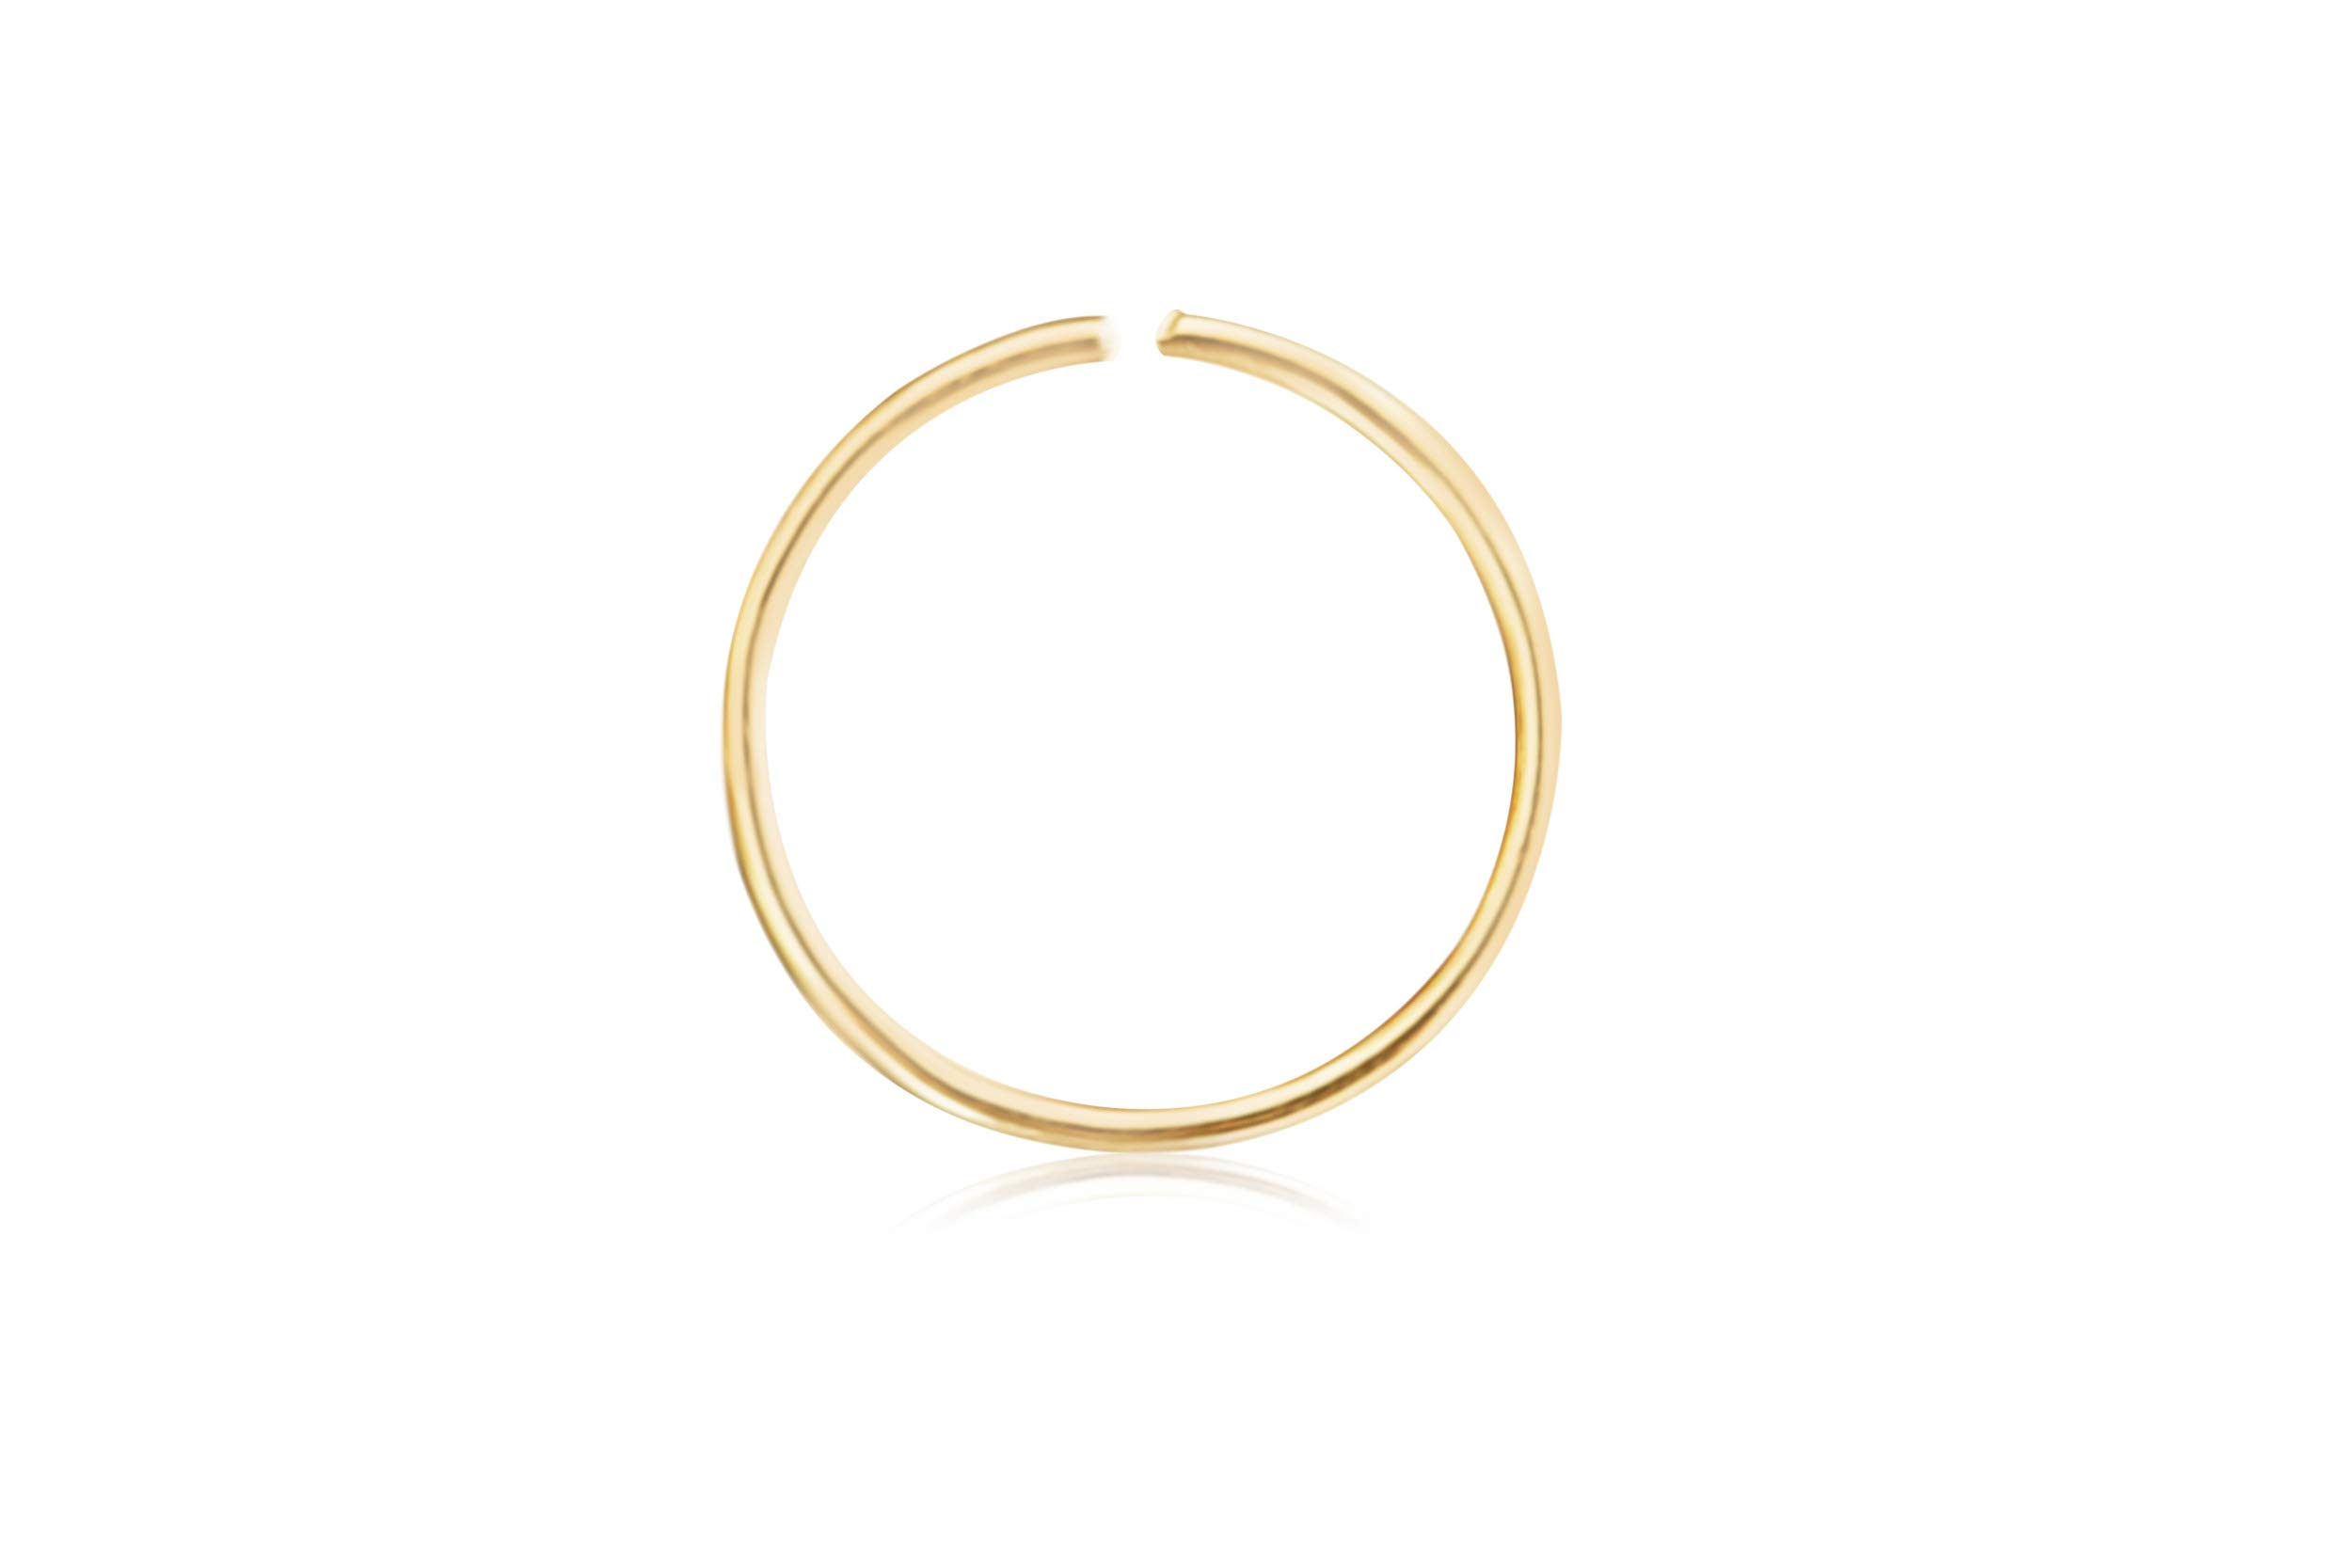 ONDAISY 10K Solid Gold Open Tragus Cartilage Snug Daith Helix Inner Outer Conch 6mm Round Large Big Tiny Small Thin Mini Face Nose Septum Hoop Ring Ear Piercing Earring For Women Girls Men by ONDAISY